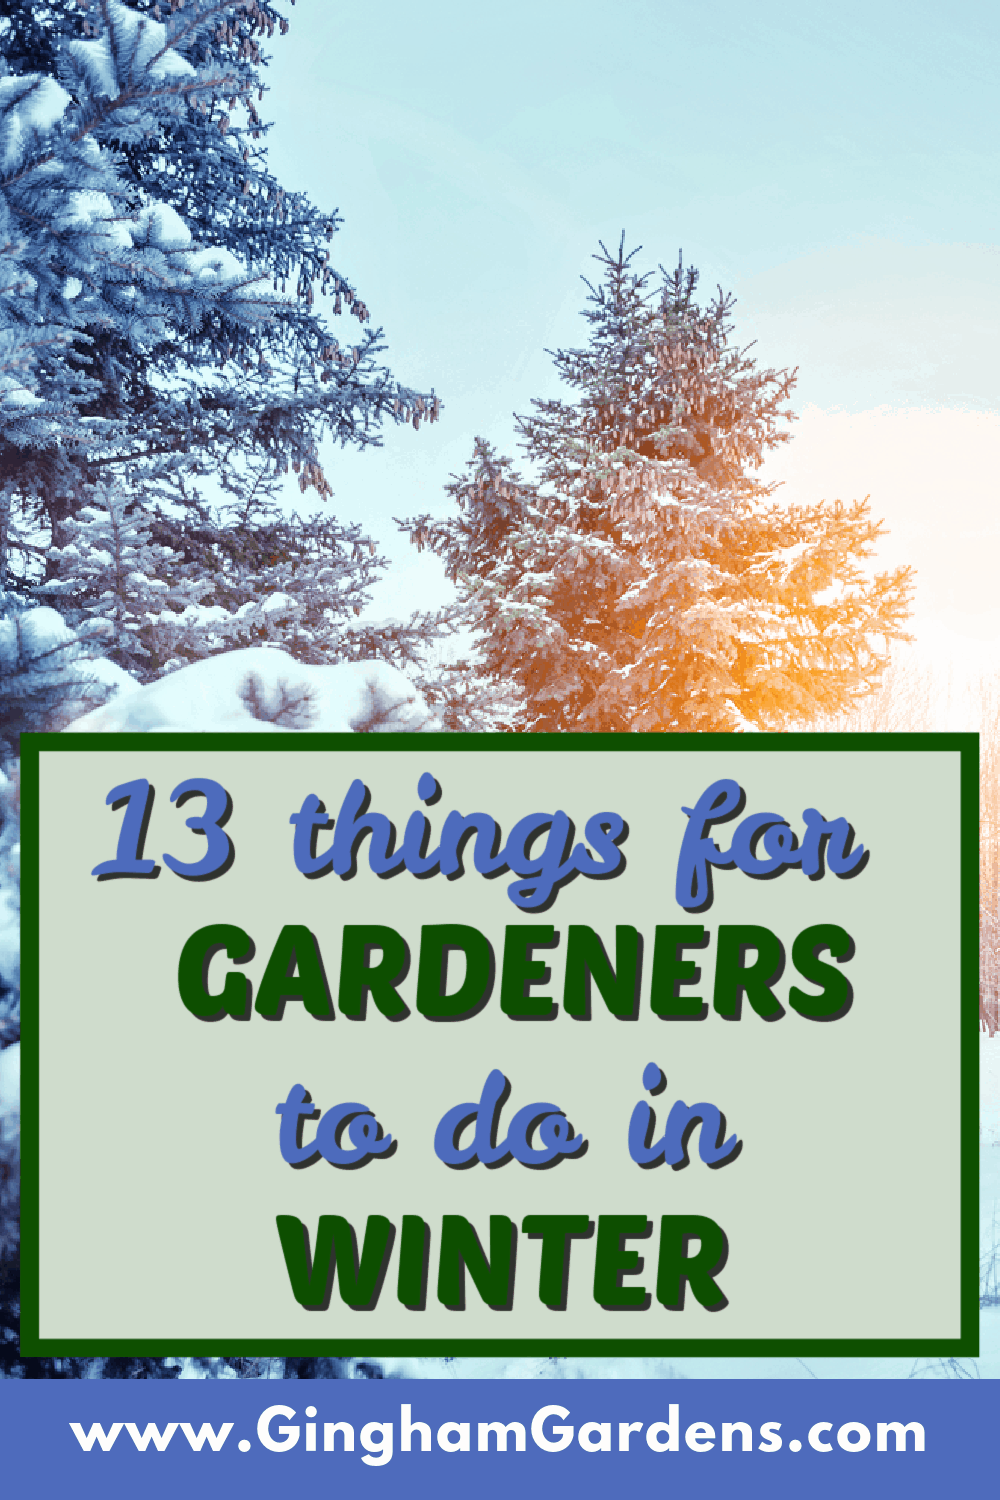 Image of Winter Trees with Text Overlay - 13 things for Gardeners to Do in Winter